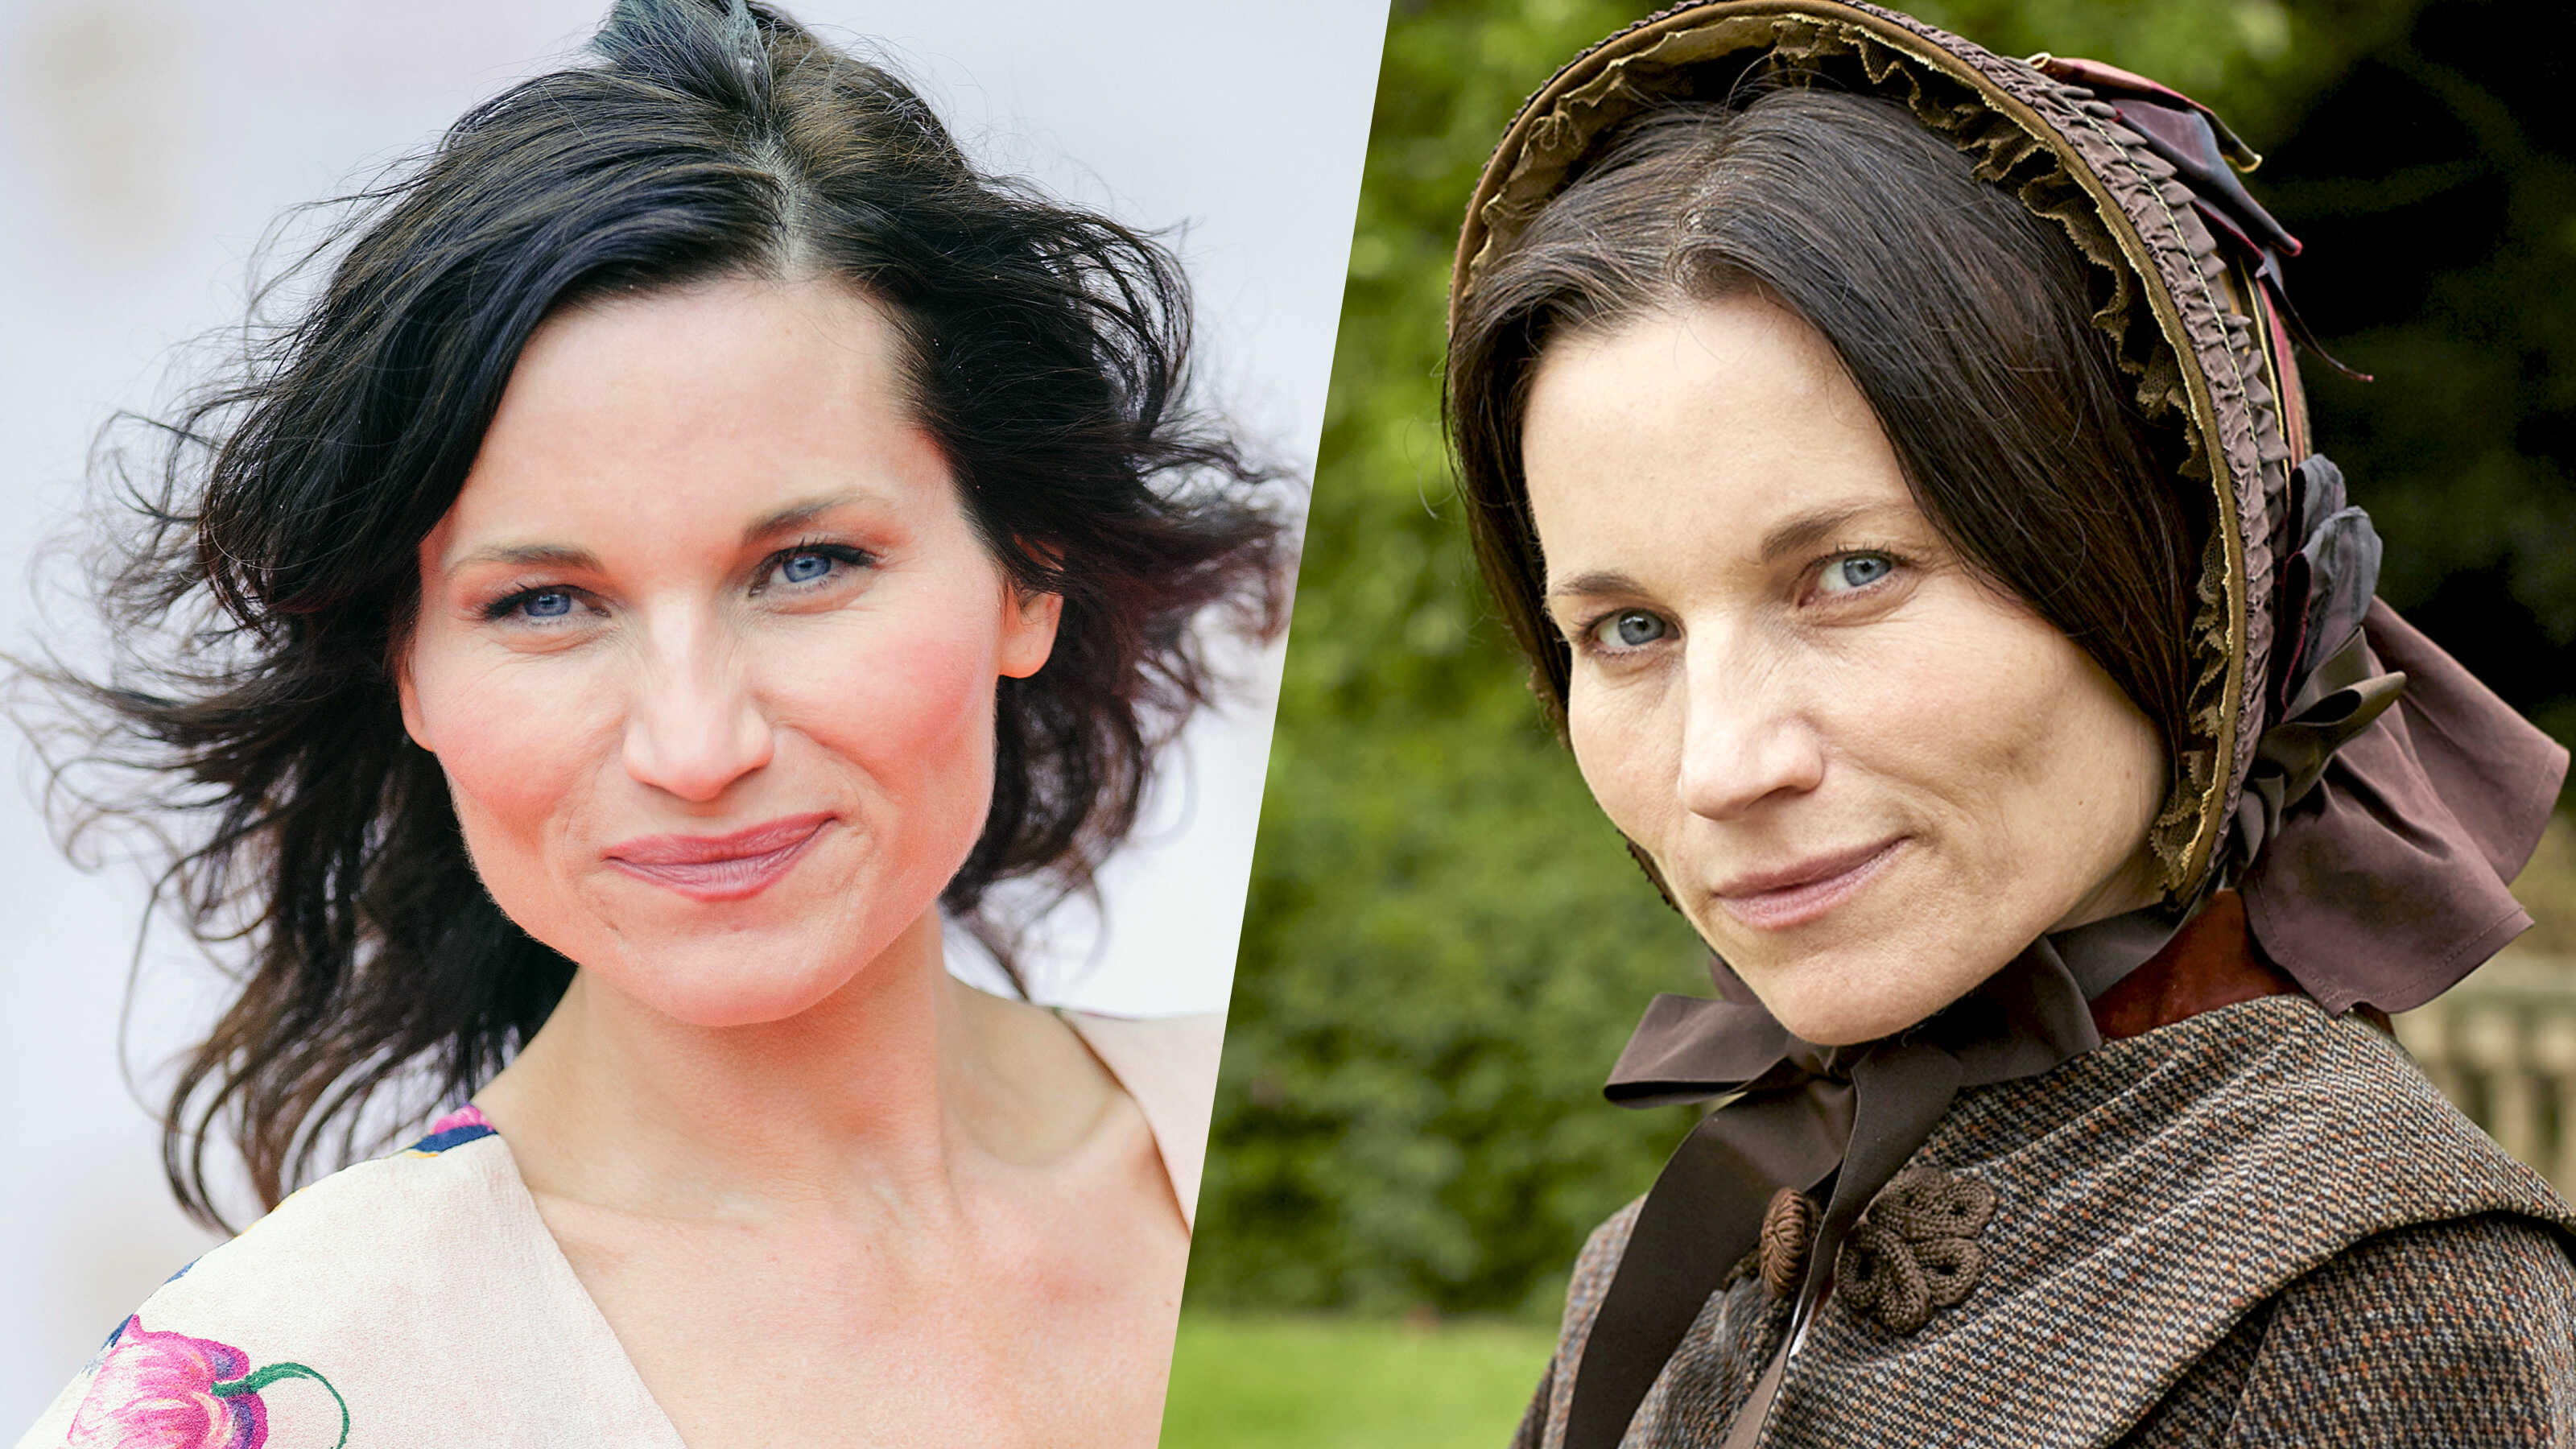 Season 3 Victoria Cast Interview Kate Fleetwood Masterpiece Pbs Kate fleetwood is an actress who portrayed mary cattermole in harry potter and the deathly hallows: season 3 victoria cast interview